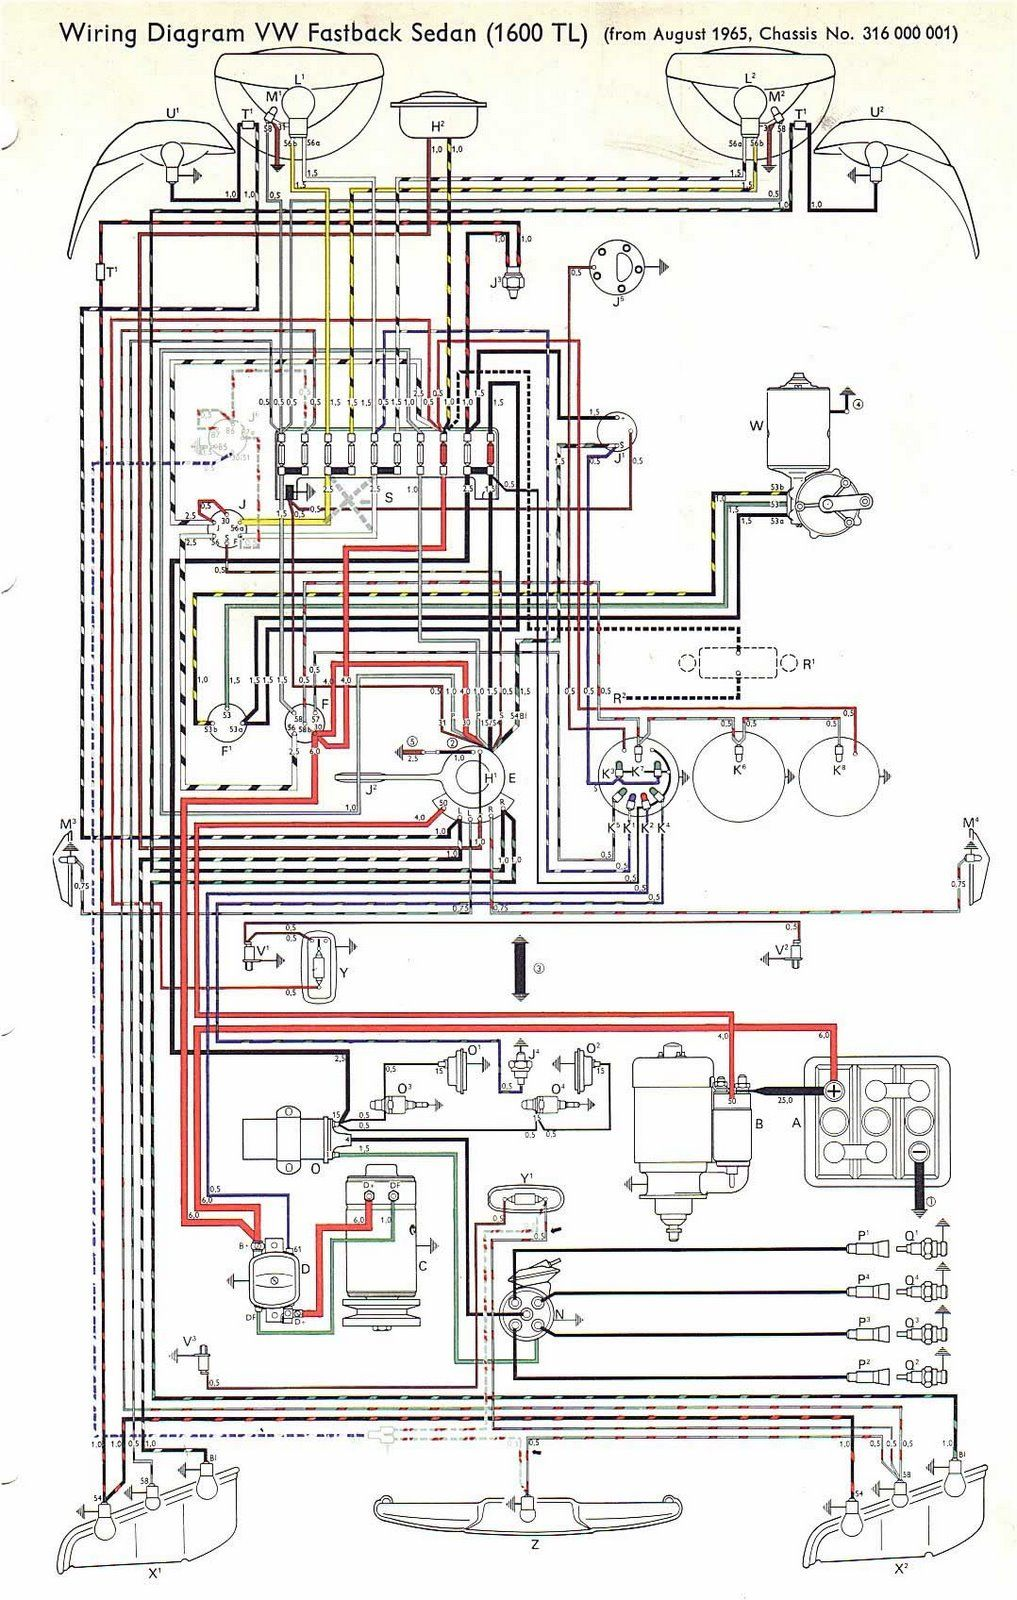 Vw 1600 Wiring Diagram Excellent Electrical House Beetle Plug Wire Fuscafatosefotos Blogspot Com Br Sistema El Trico Do Fusca Tl Rh Pinterest Pdf Type 3 Squareback Volkswagen